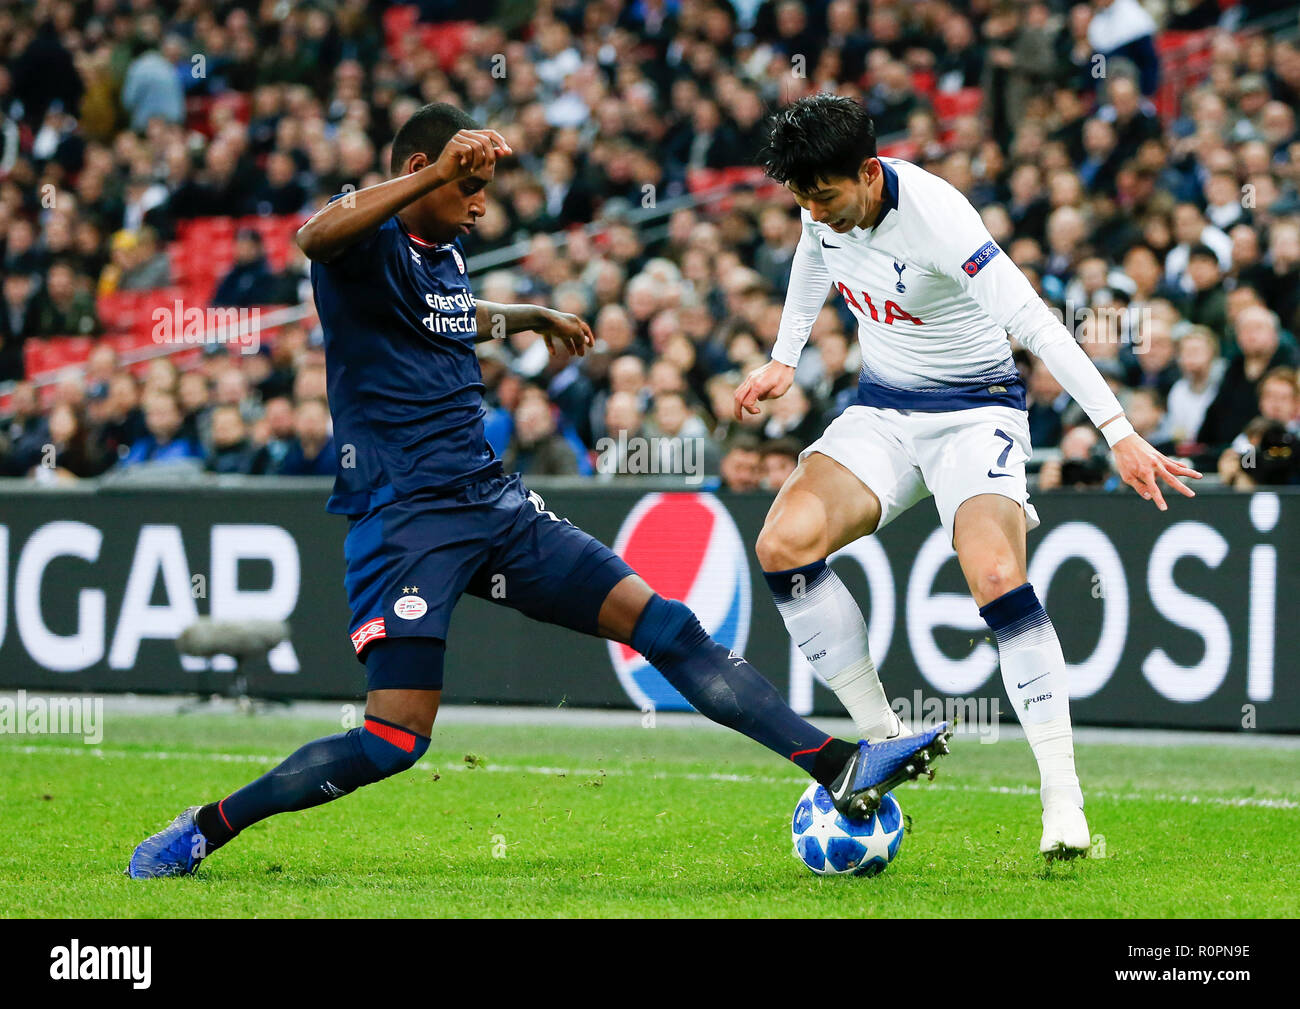 17c0c8ab01f Tottenham Hotspur s Son Heung-Min (R) competes during the UEFA Champions  League match between Tottenham Hotspur and PSV Eindhoven in London